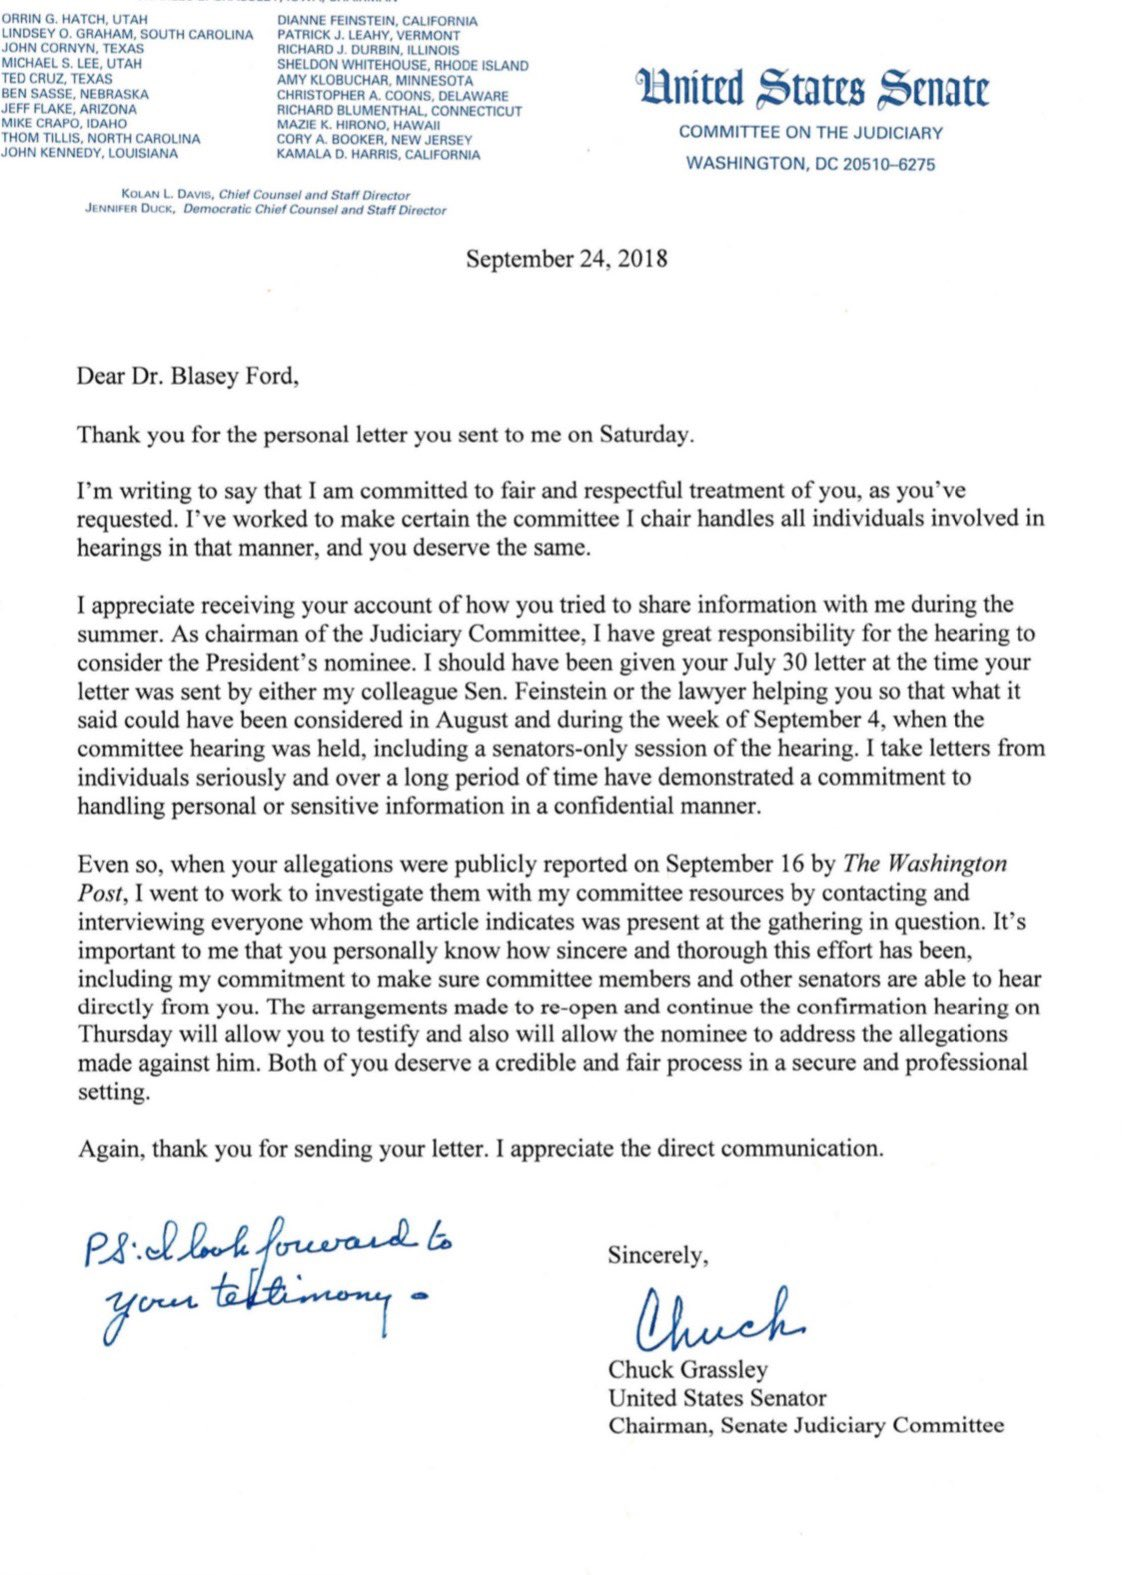 Grassley Promises 'Fair And Respectful Treatment' In Letter To